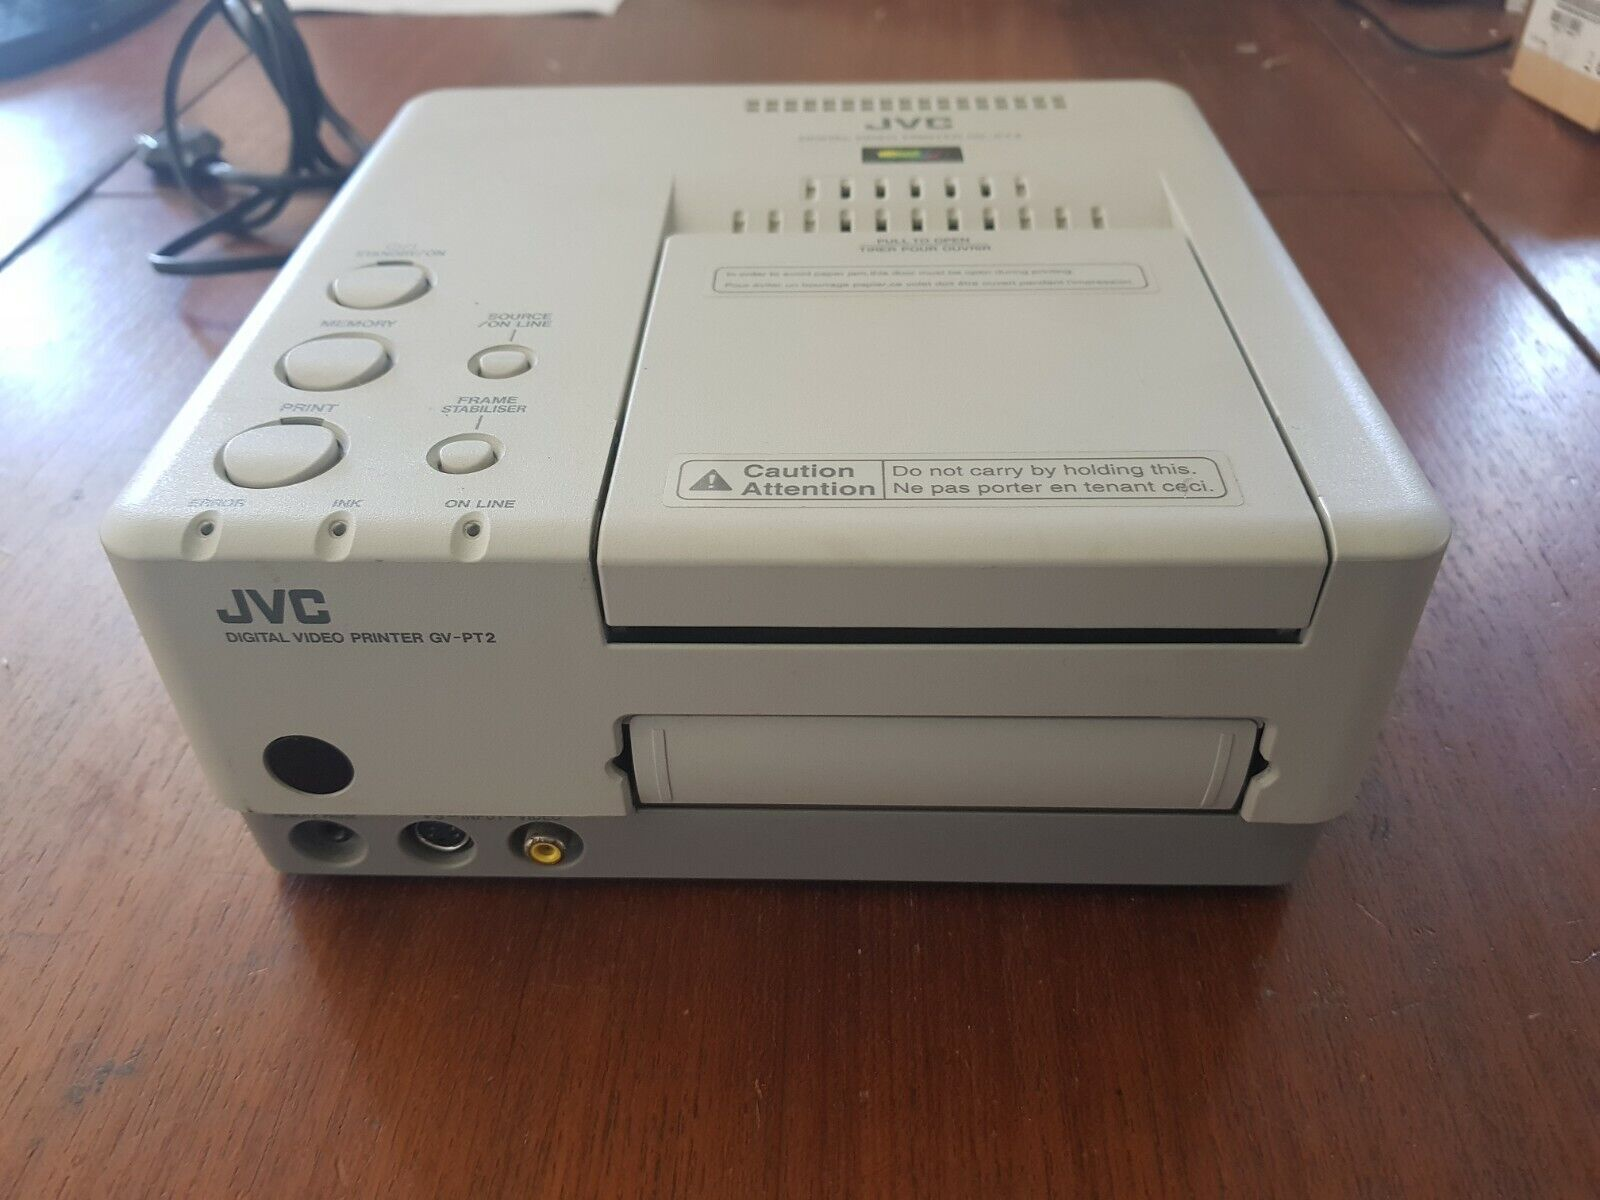 Imprimante photos cartes postale jvc digital video printer gv-pt2